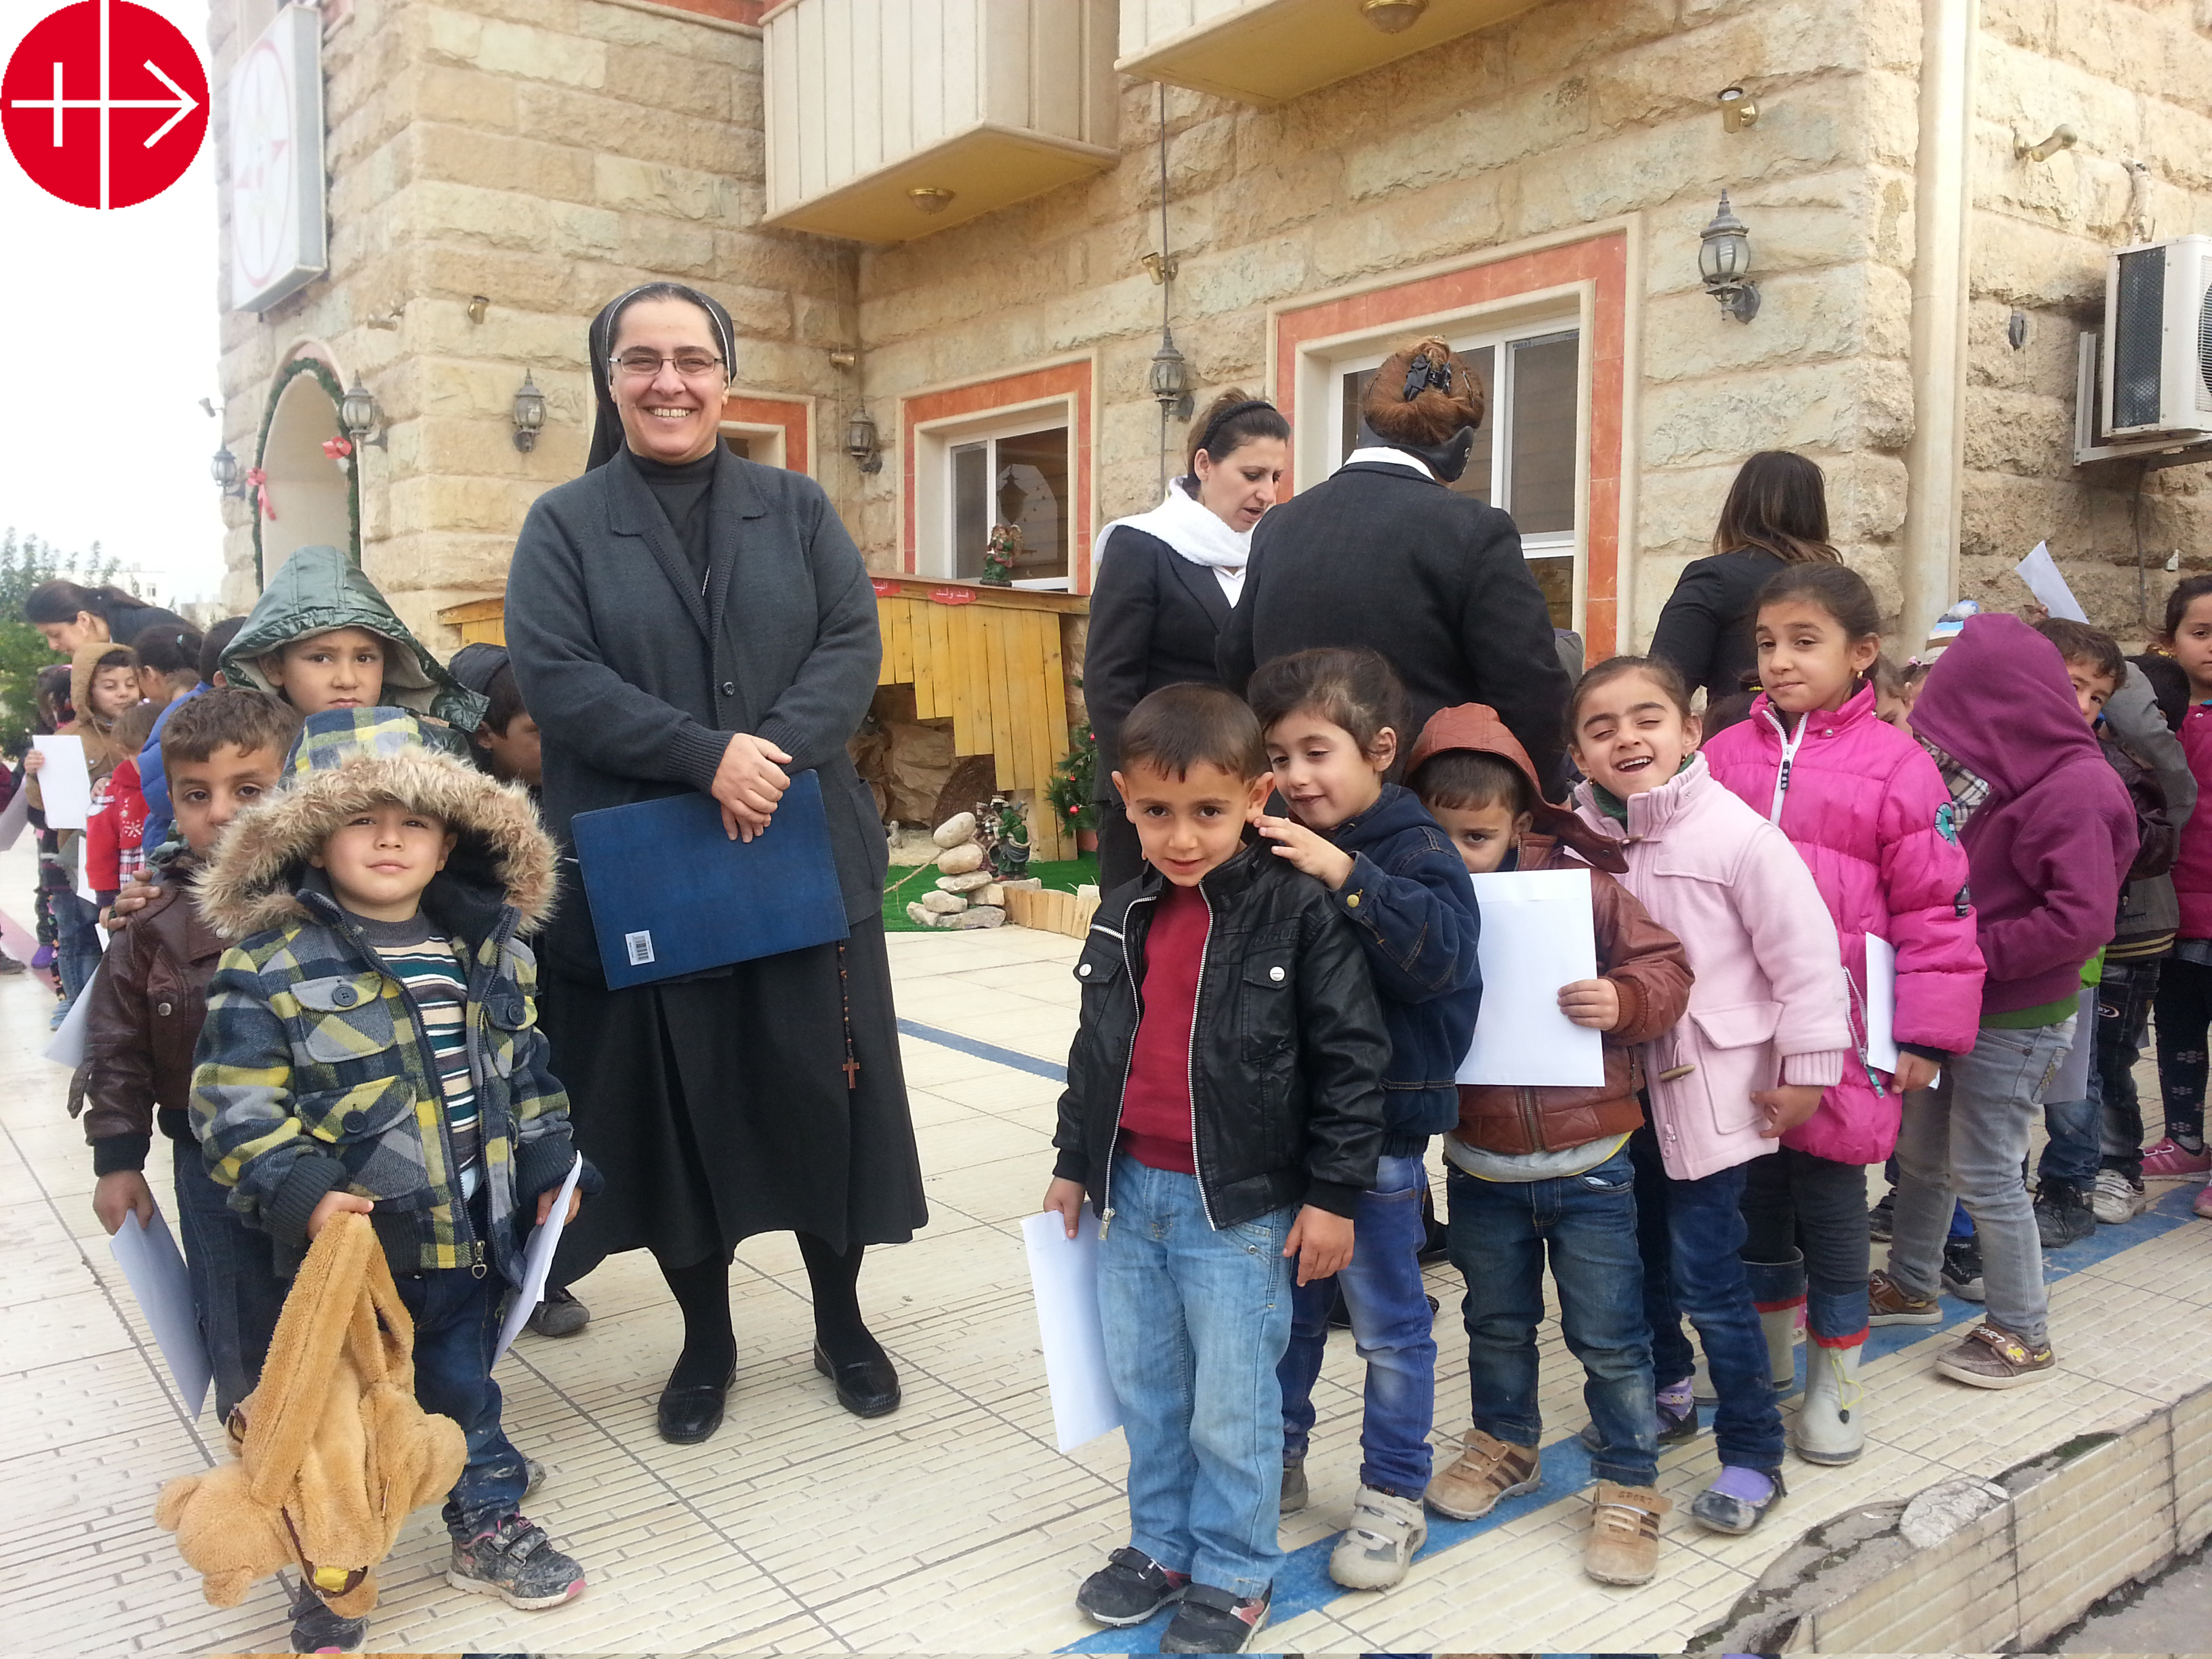 Sister Sanaa Hana is the superior od the Sisters of the Sacred Hart. Their convent in Mossul was destroyed by ISIS. Before the sisters had to flee the City and leave everything behind. The Picture shows Sister Sanaa in Erbil with children in front of a house of the congregation where she found refuge. IRAQ / NATIONAL 14/00254 Existential aid for 20 displaced Sacred Heart sisters from Mosul, 2014/ 2015